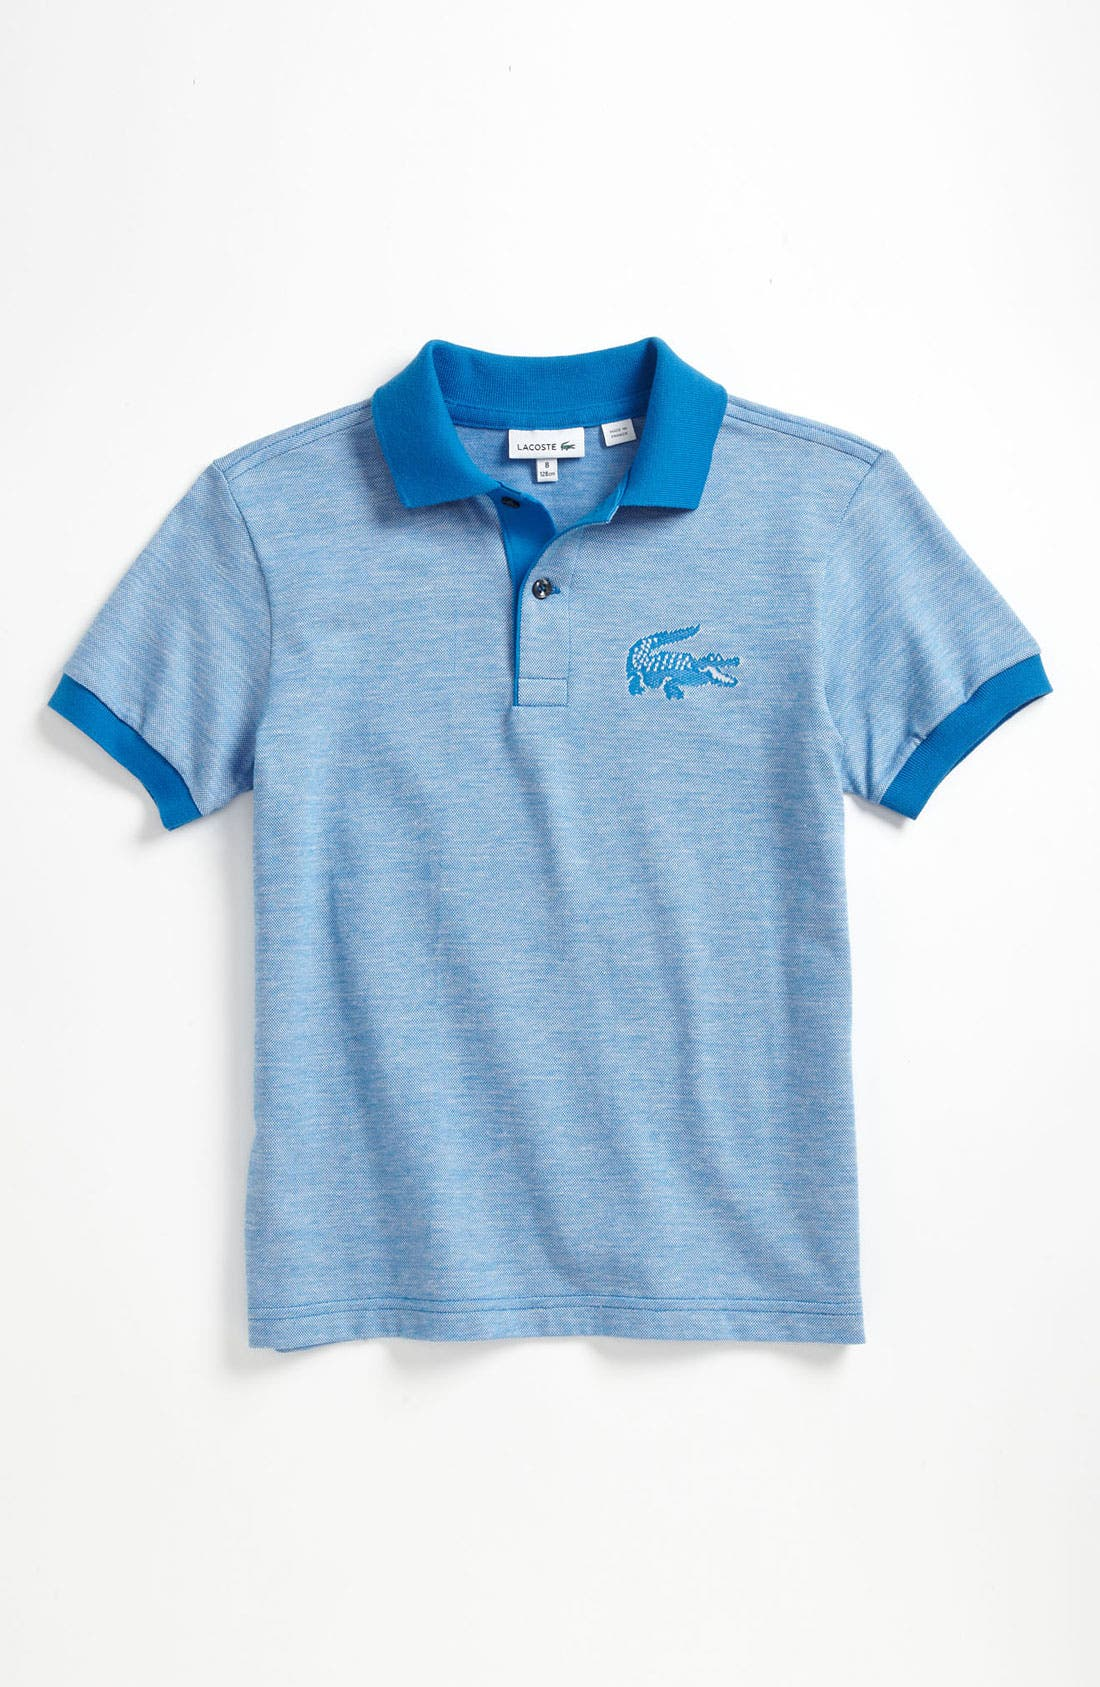 Main Image - Lacoste Heathered Jersey Polo (Little Boys & Big Boys)